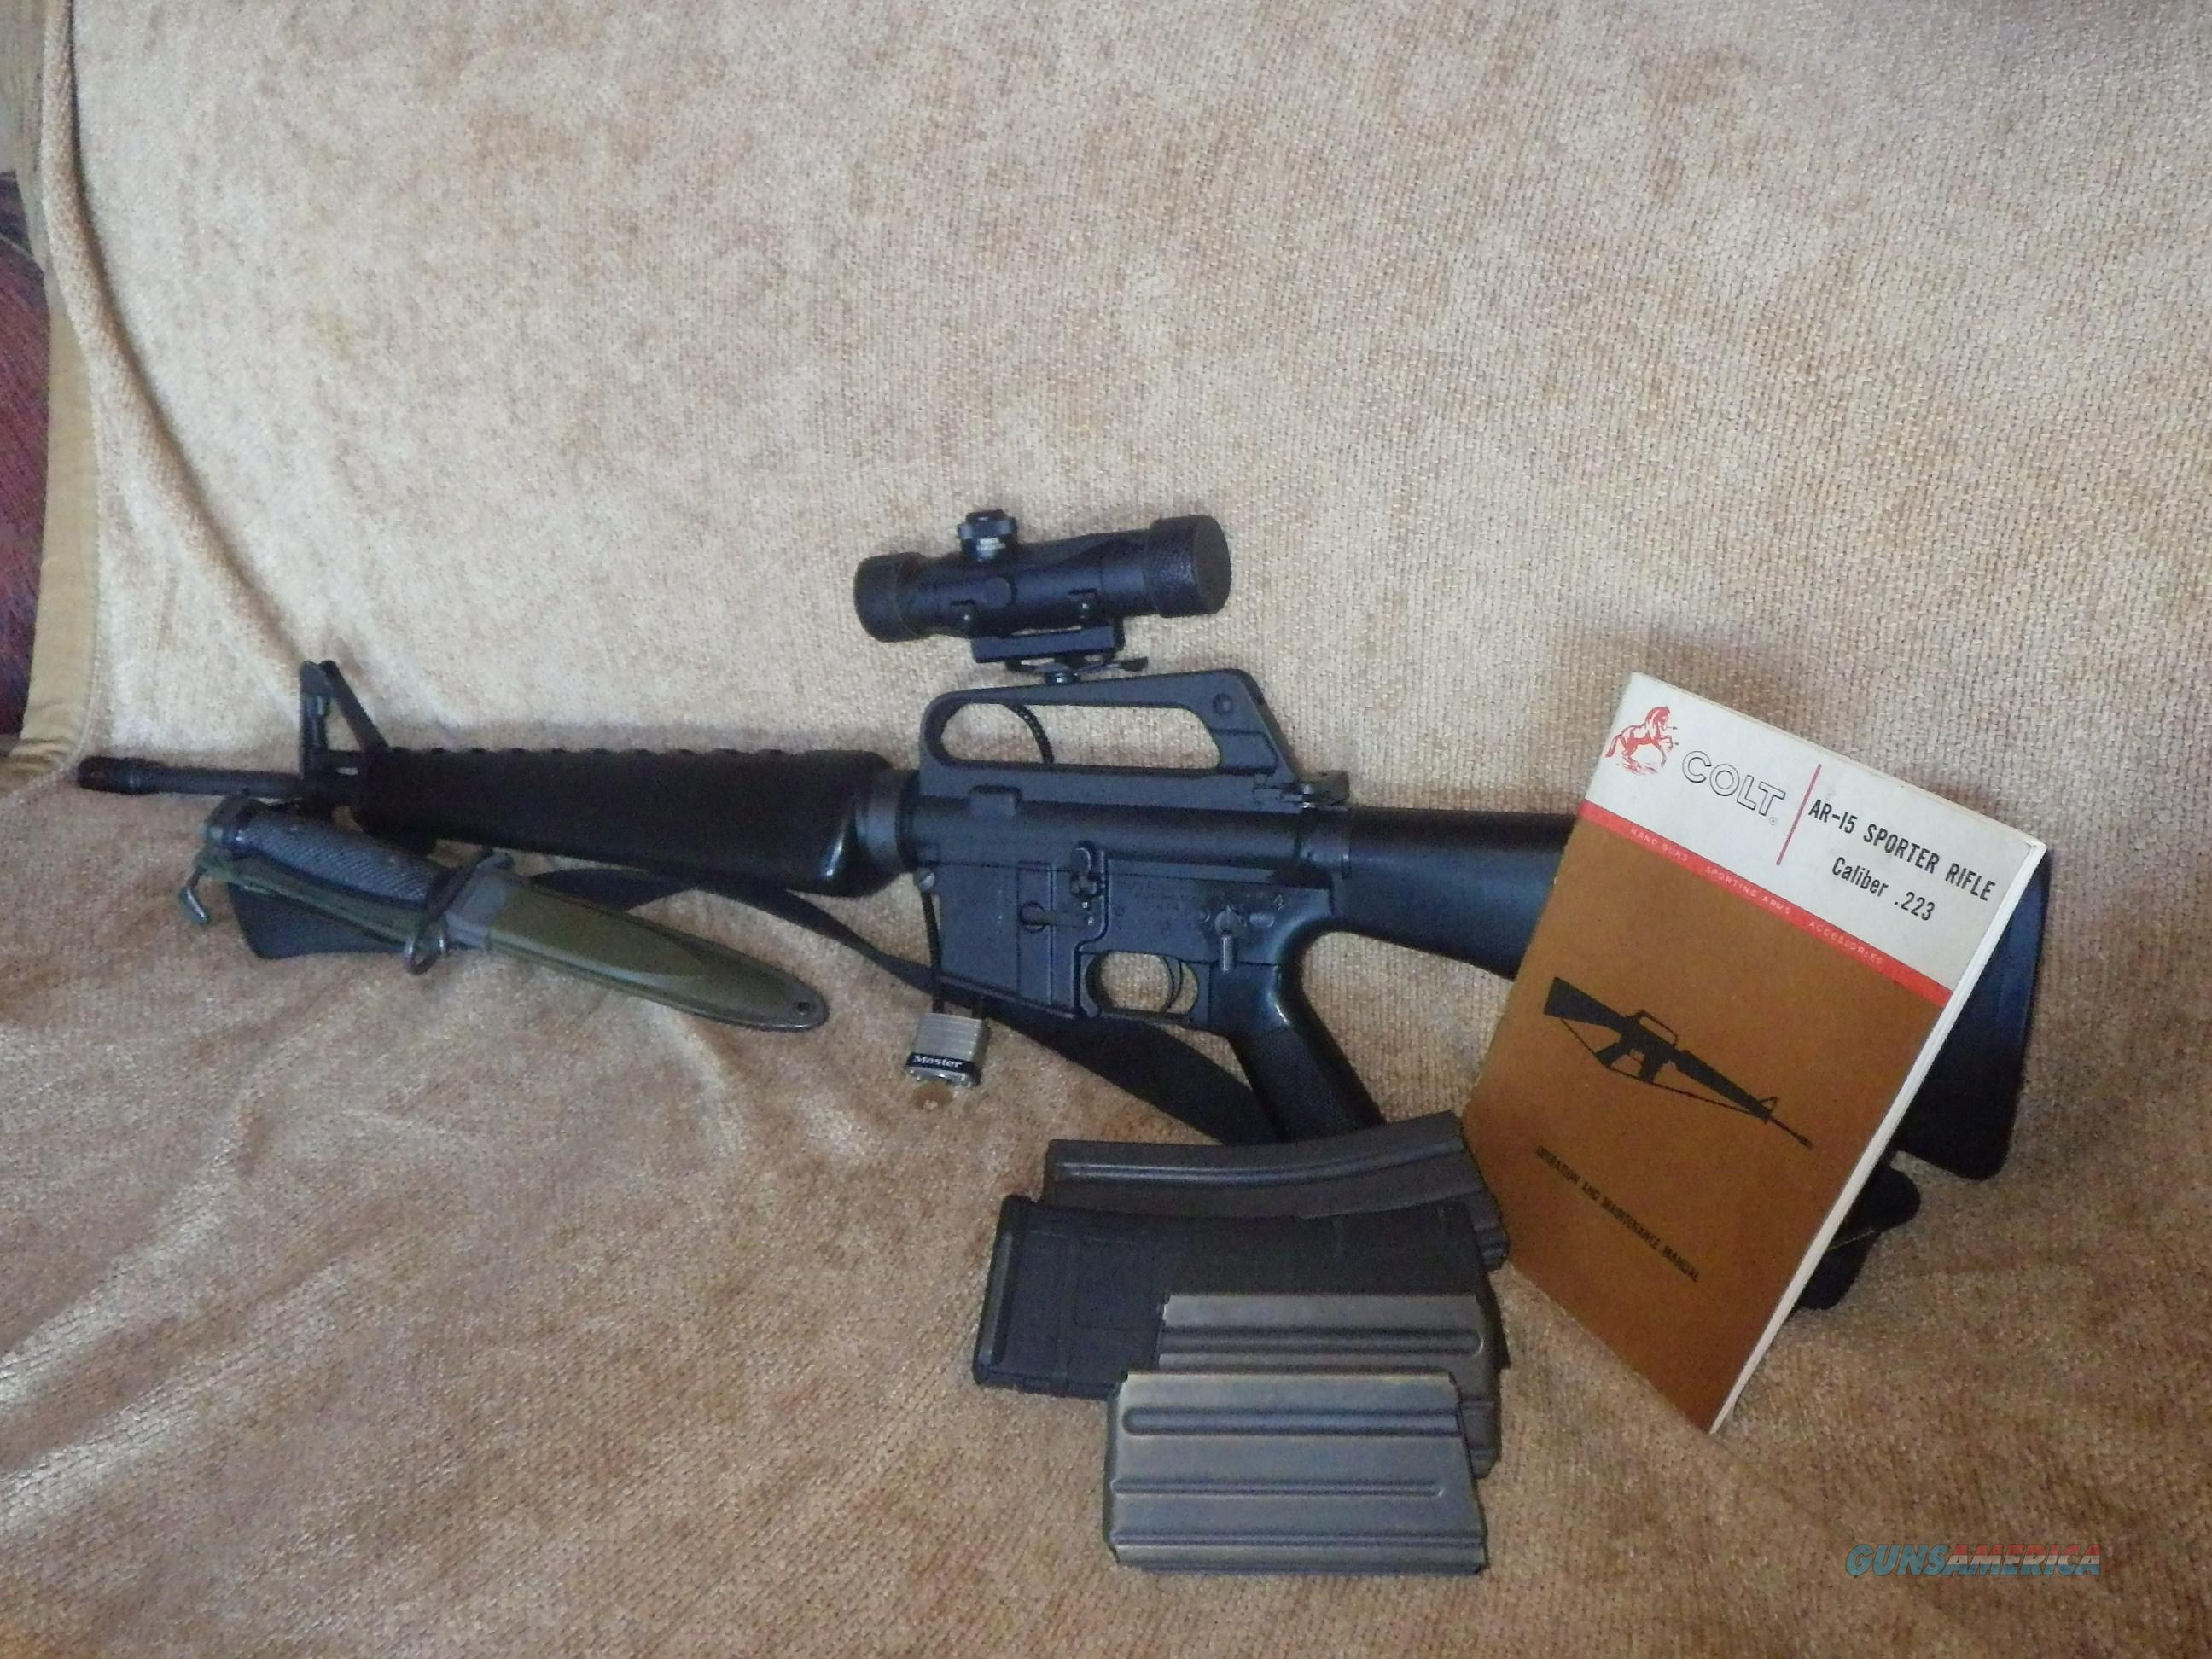 Colt SP1 AR-15 .223 5.56 cal Colt 3x20 Scope and Mount and  Original Manuel  M7  Bayonet And  USM8A1  Sheath Includes   4 Magazines   Guns > Rifles > Colt Military/Tactical Rifles